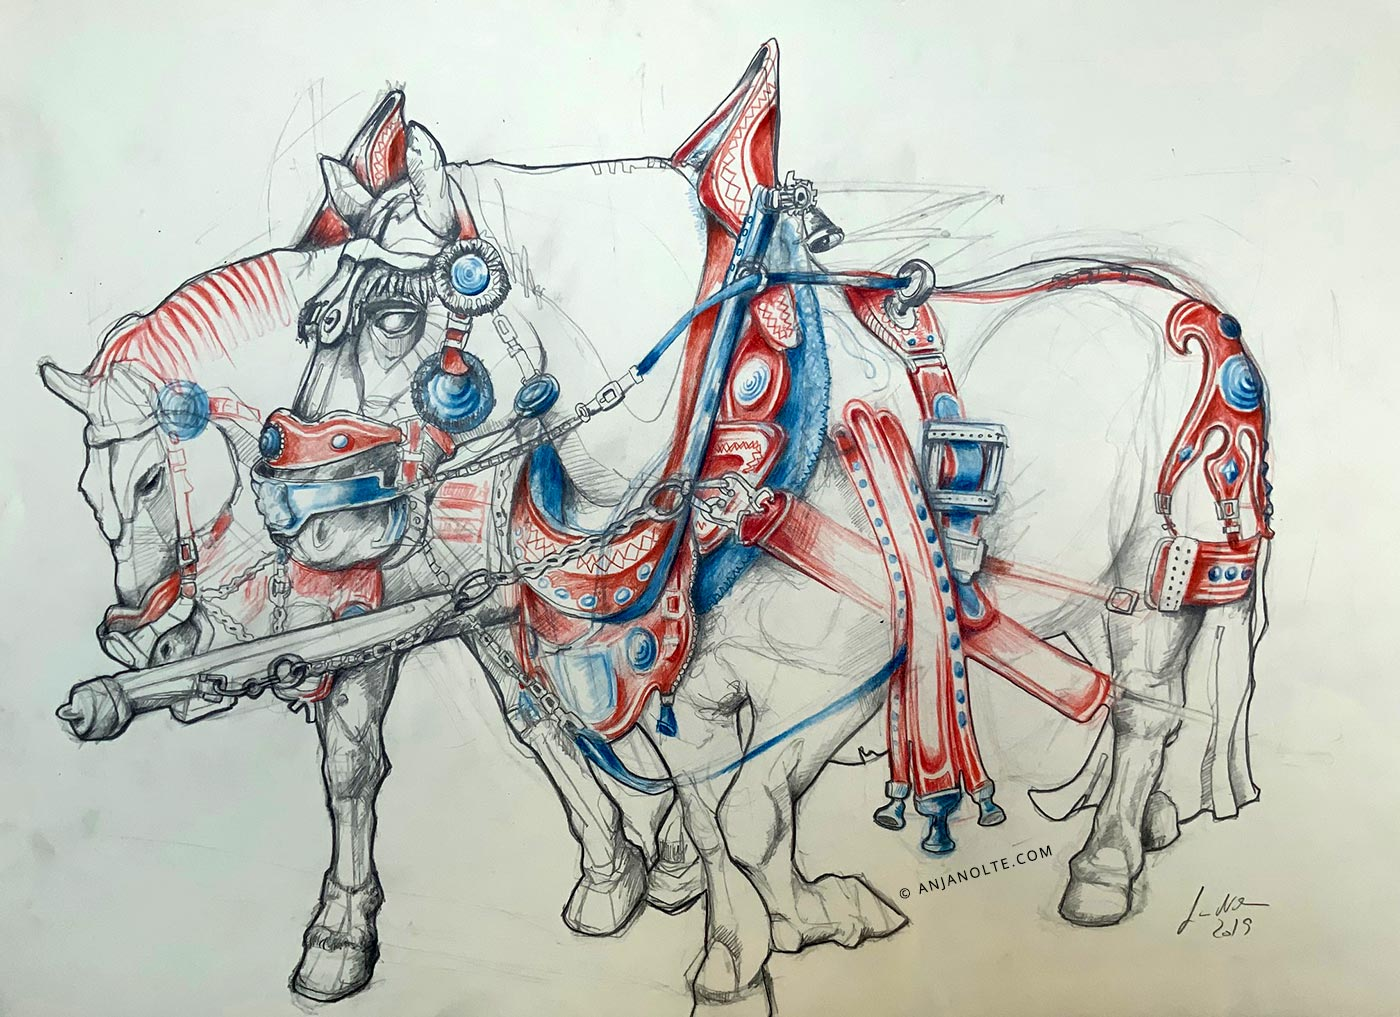 Pencildrawing of a team of horses by Anja Nolte.